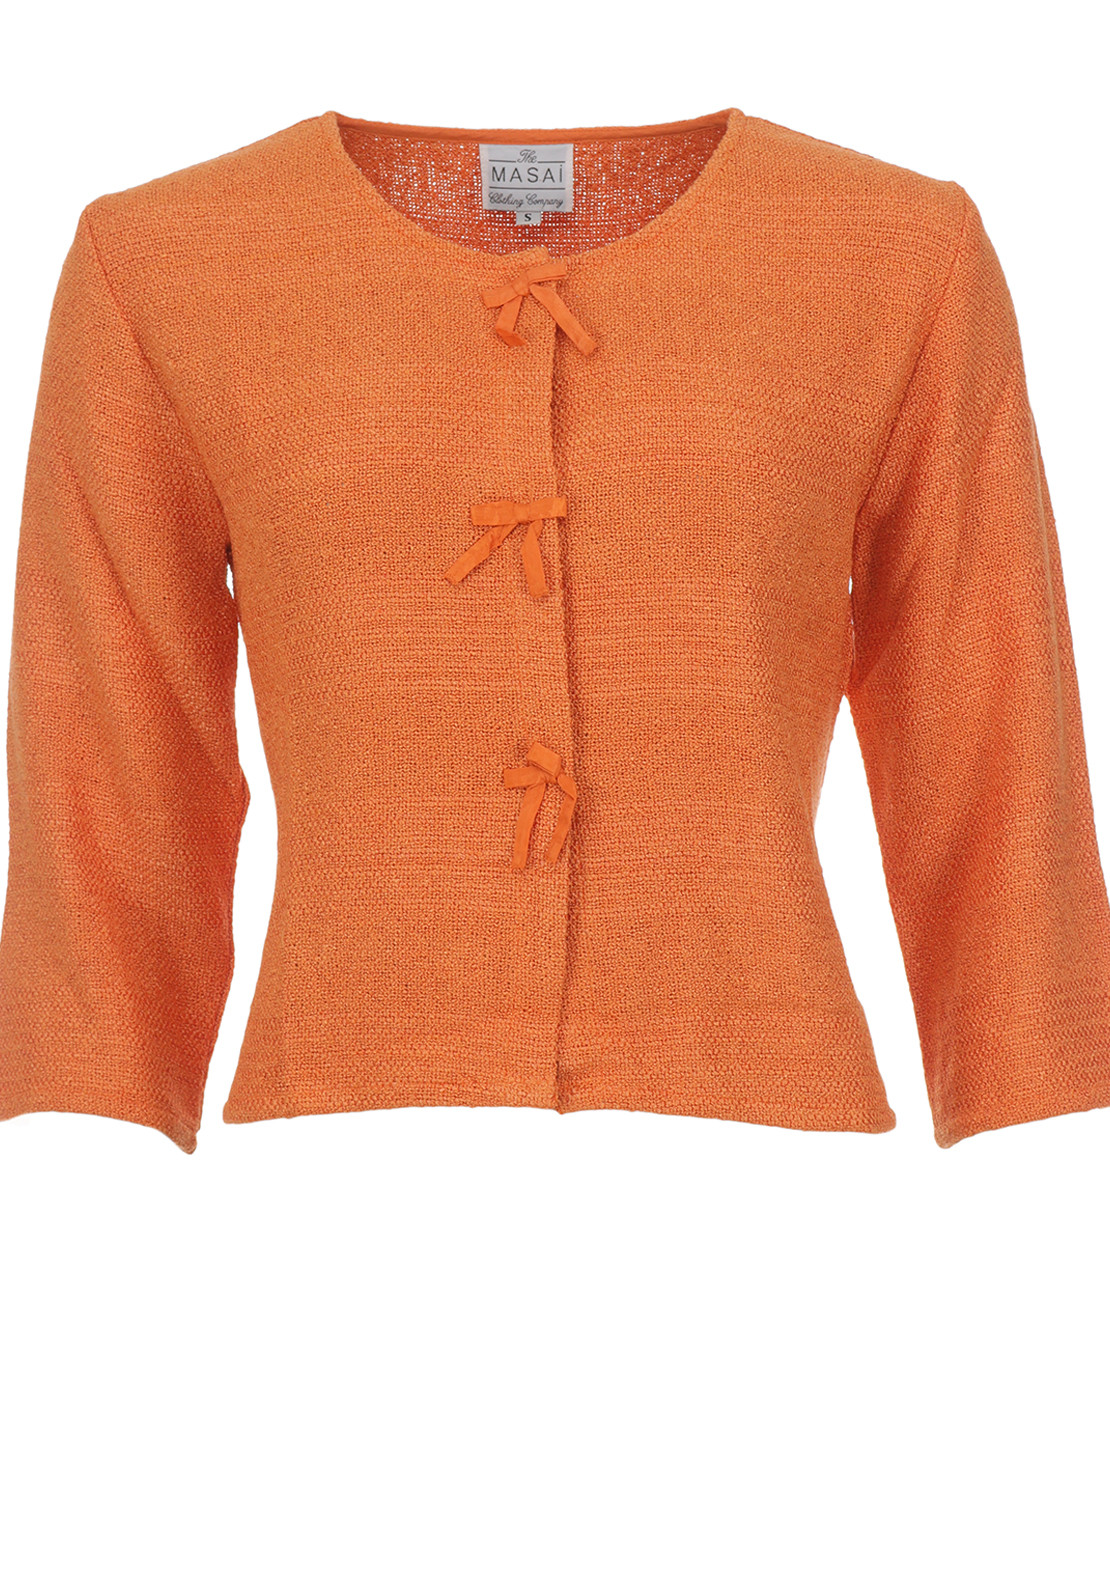 The Masai Clothing Company Justa Cardigan, Orange